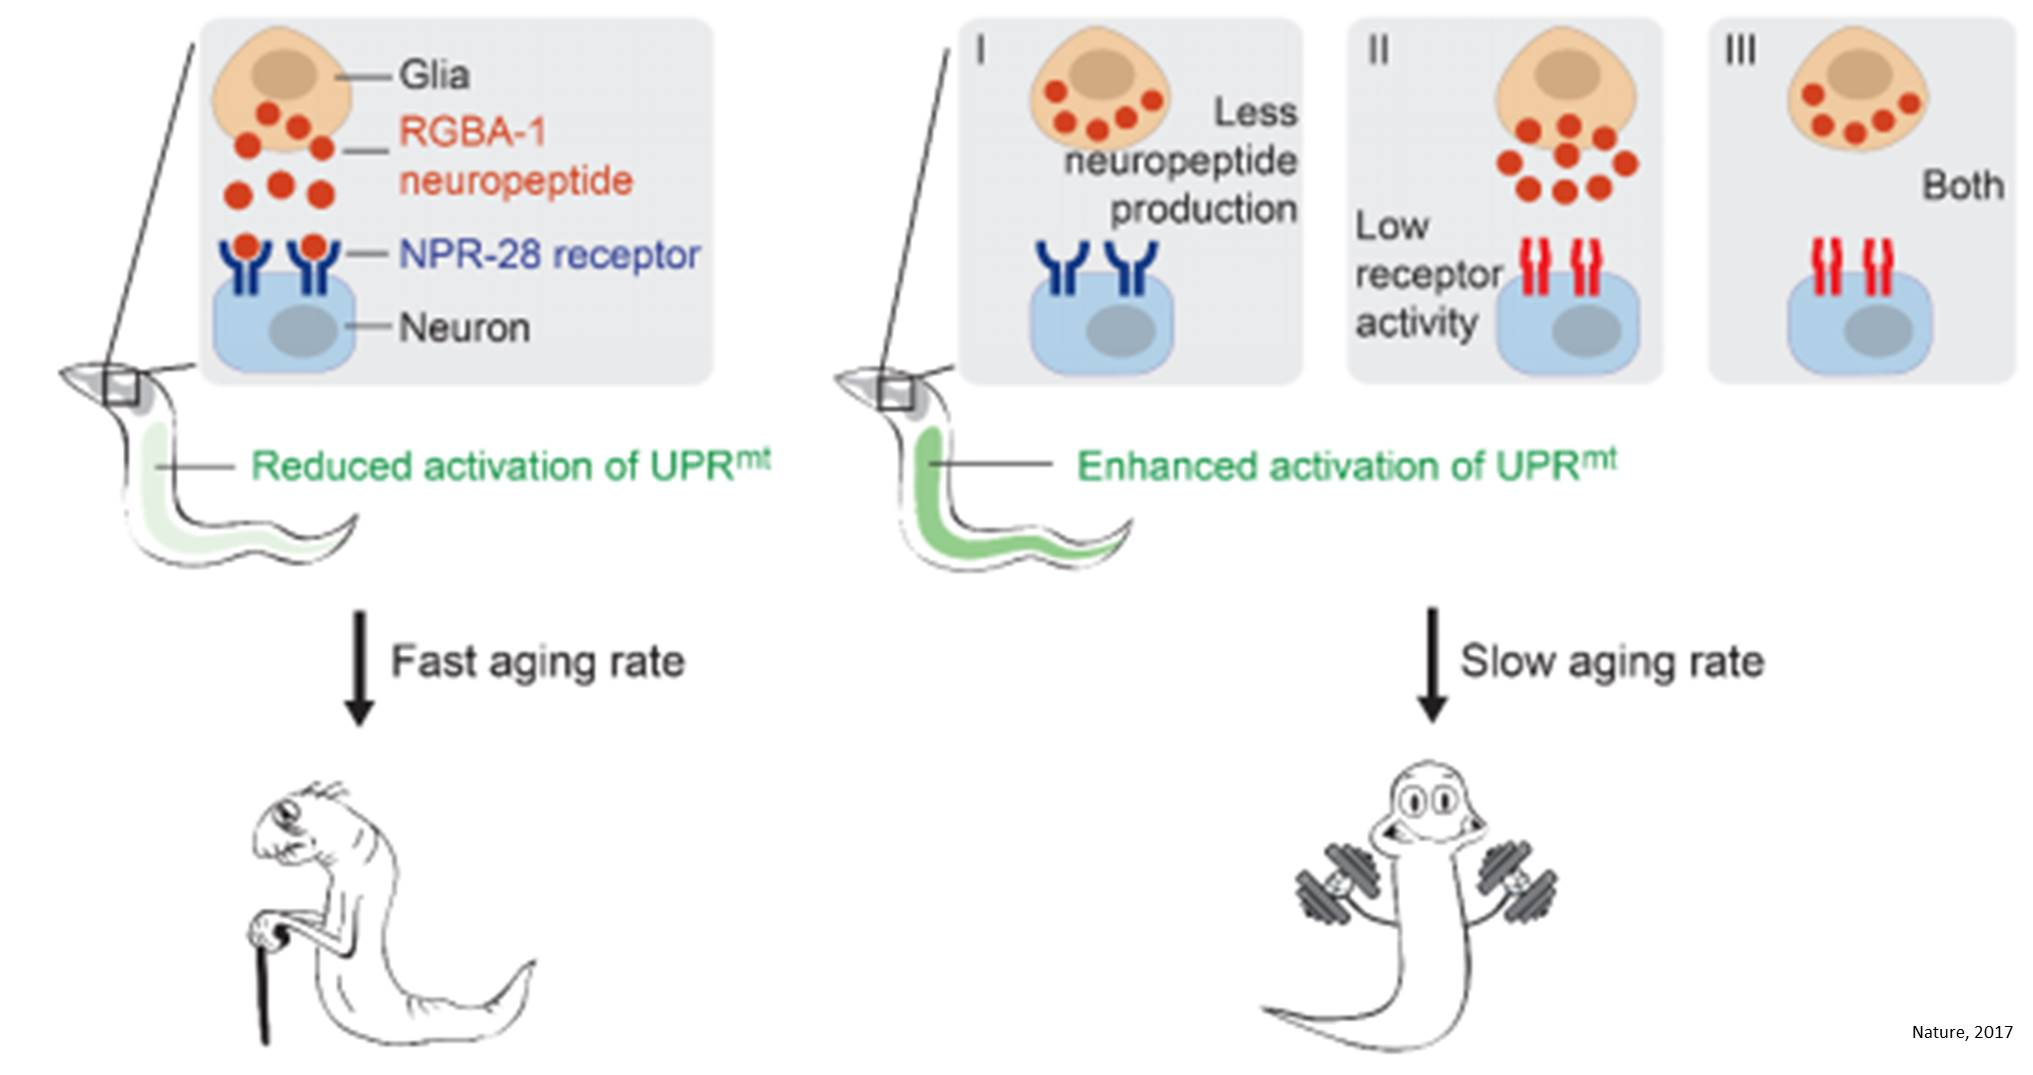 Genetic variation in glia-neuron signalling modulates ageing rate